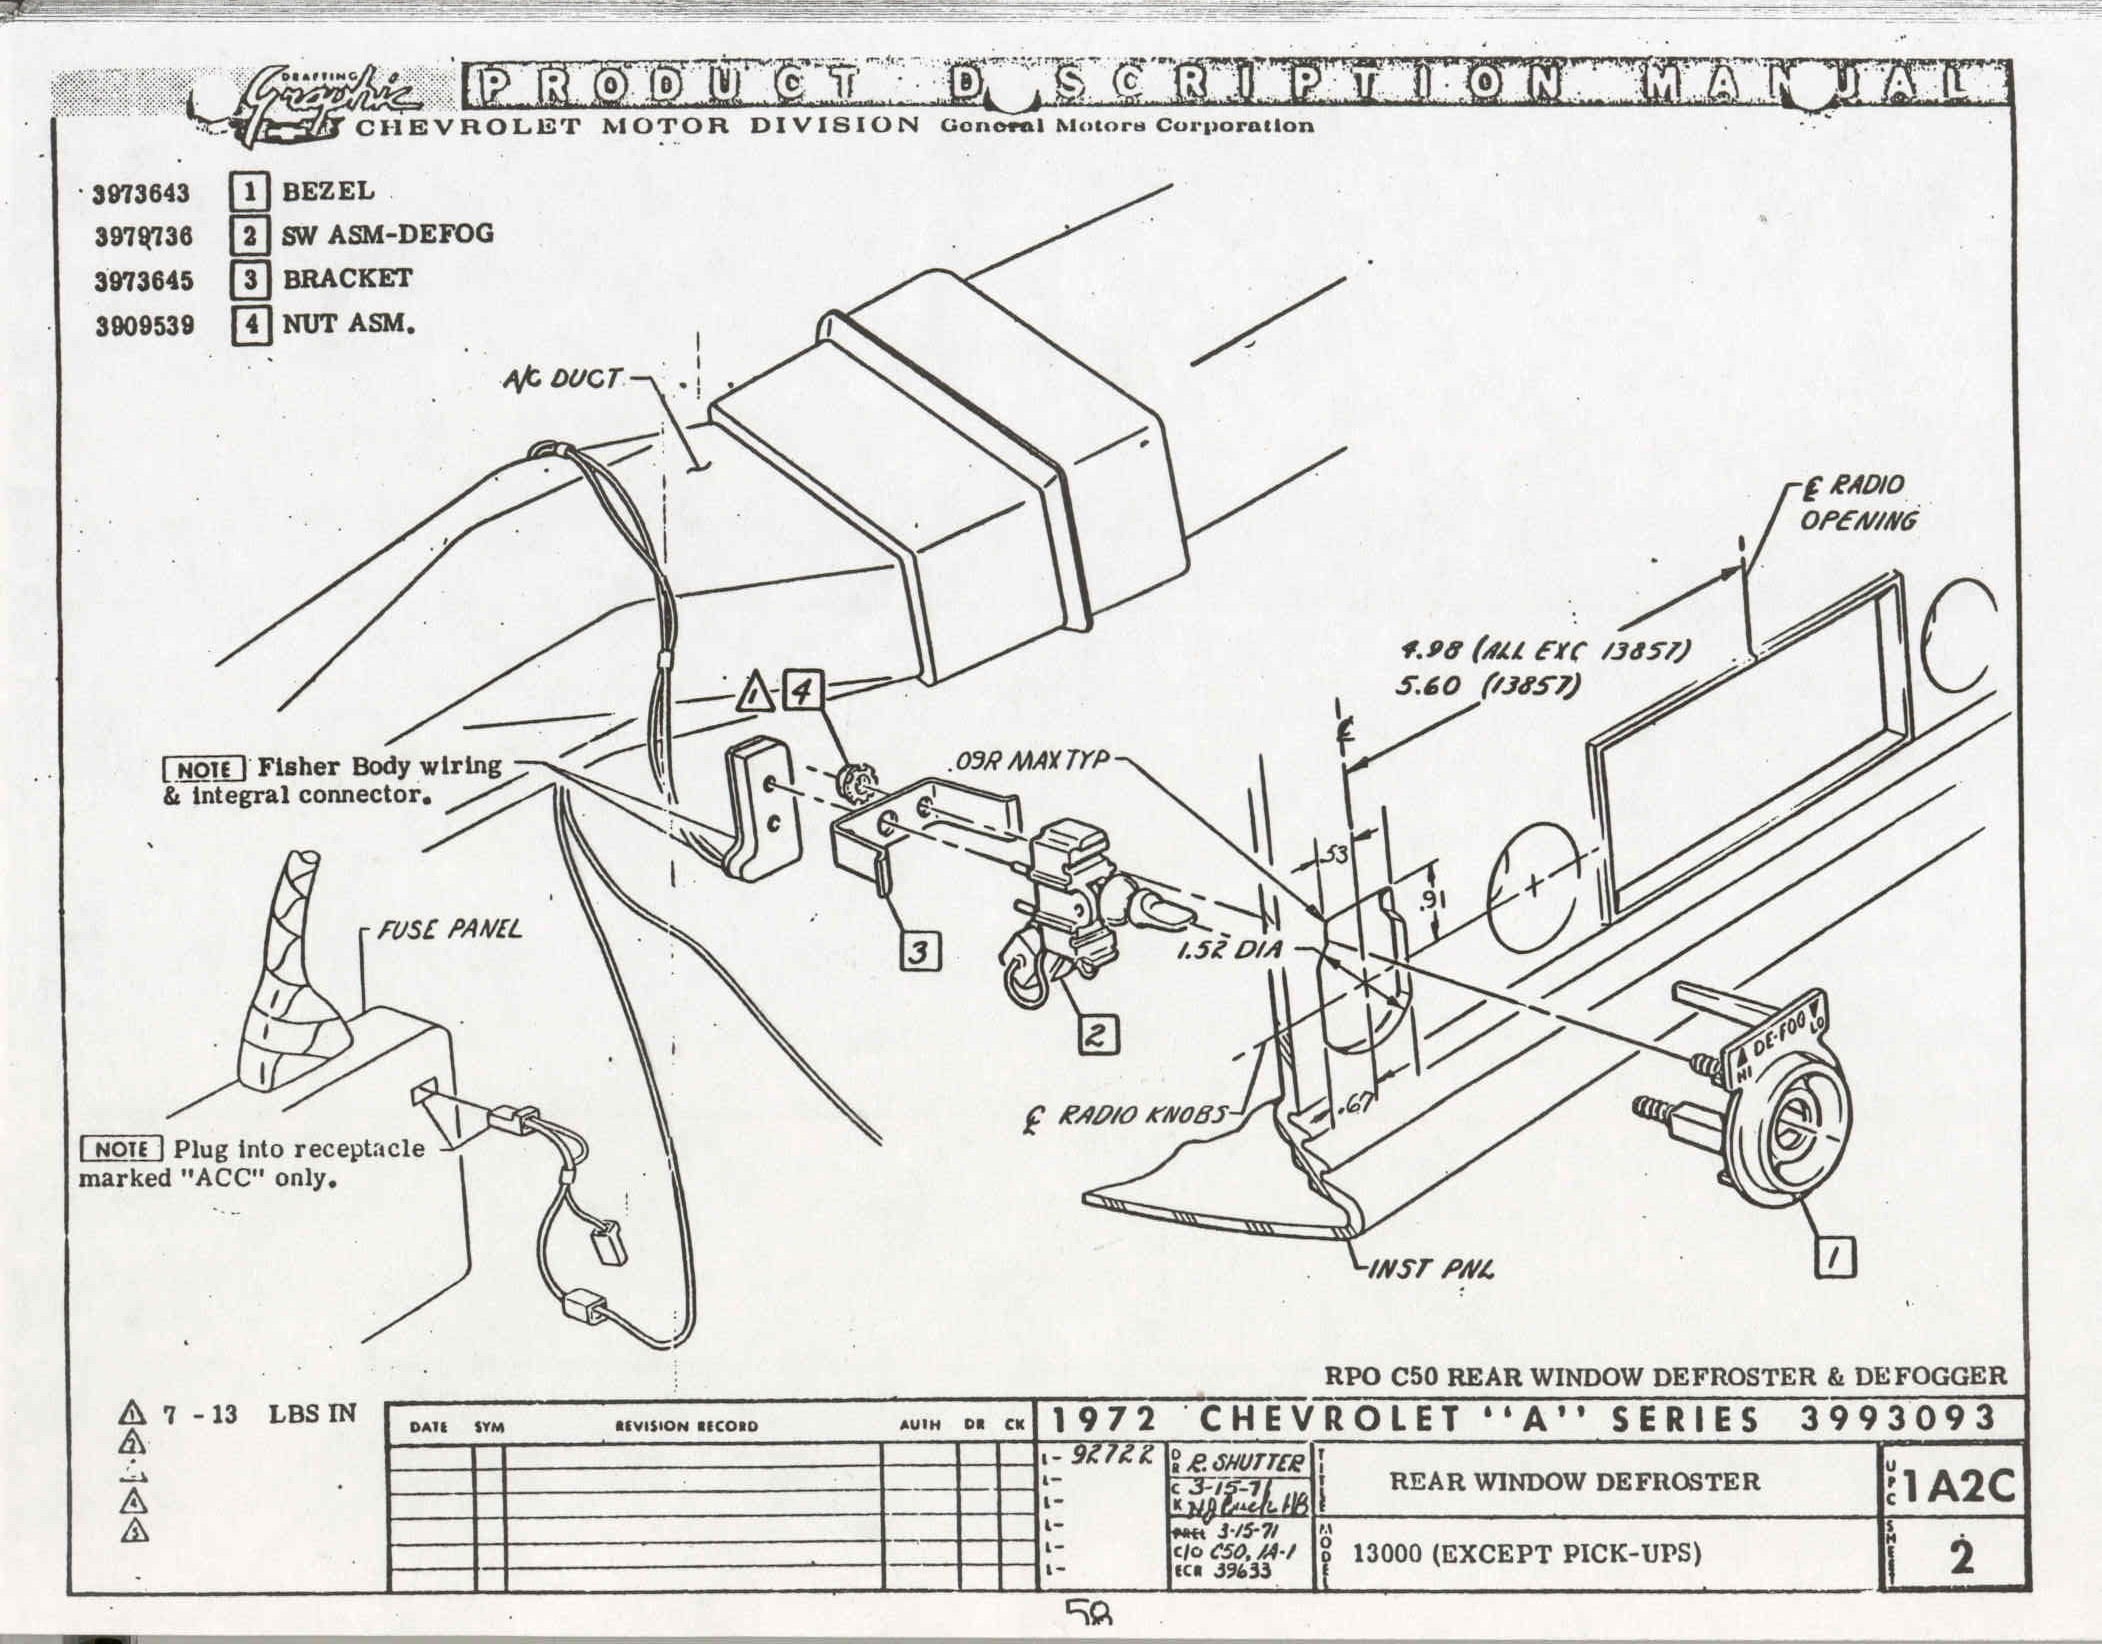 wiring diagram for 1970 chevelle the wiring diagram 1970 chevelle wiring harness diagram electrical wiring wiring diagram